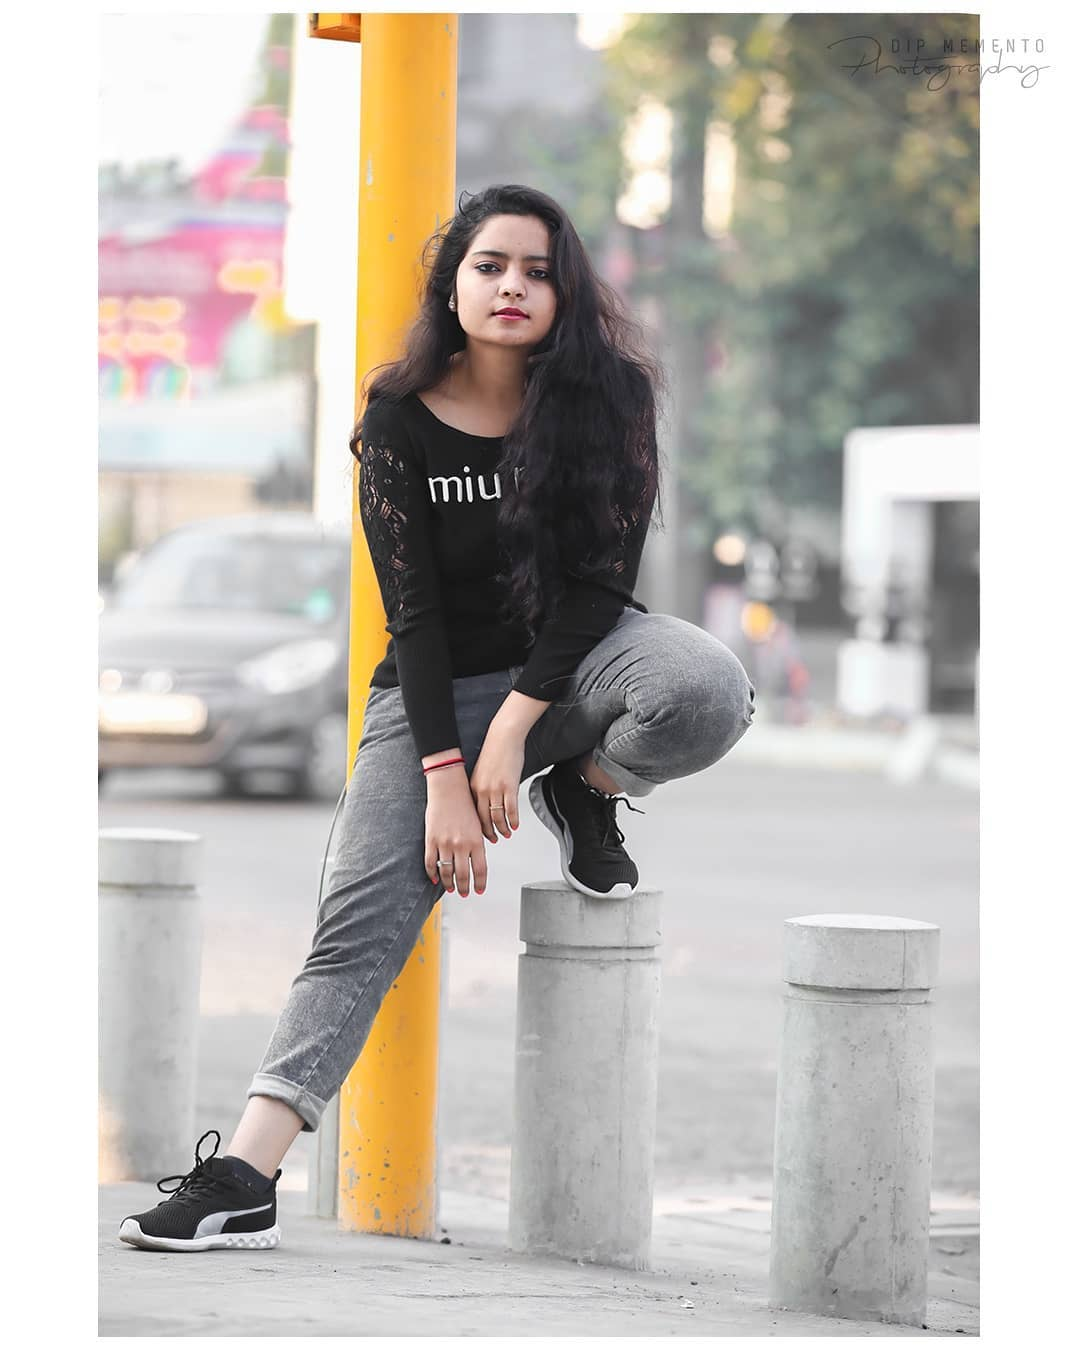 Be brave enough to love ur self.. . . Shoot : Street Fashion  @dip_memento_photography @meandmyphotography11  Face: @meera_daxini . . #portraitphotography #portraitmood #portraitspg #portraitpage #vscoportrait #portait  #dipmementophotography  #ahmedabad #fashion #photographer #portraitmode #featurepalette #illgramers #portrait_mf #9924227745 #pursuitofportraits #portrait_shots #moodyportrait #portraitmag #portrait_planet #resourcemag #portraitamazing #portraits_life #portraitfeed #pulsefilm #streetxstory #nextvisualportraits #feature_portraits #portrait_